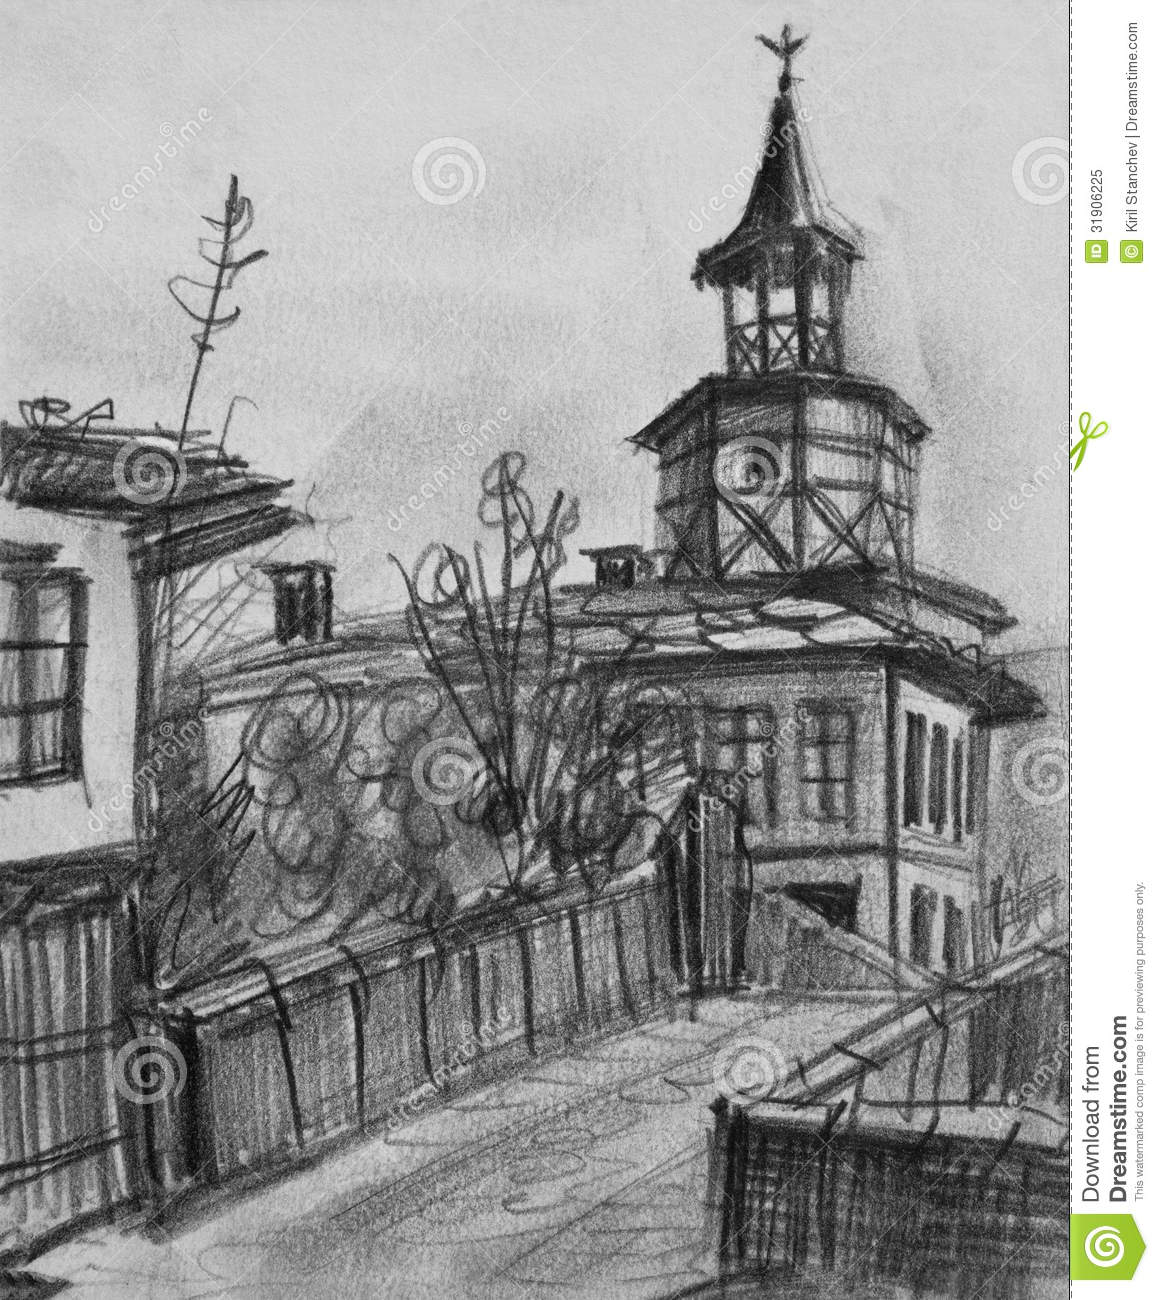 2 Fluchtpunktperspektive Stadt Pencil Drawing Of The Old Clock Tower In Tryavna Stock